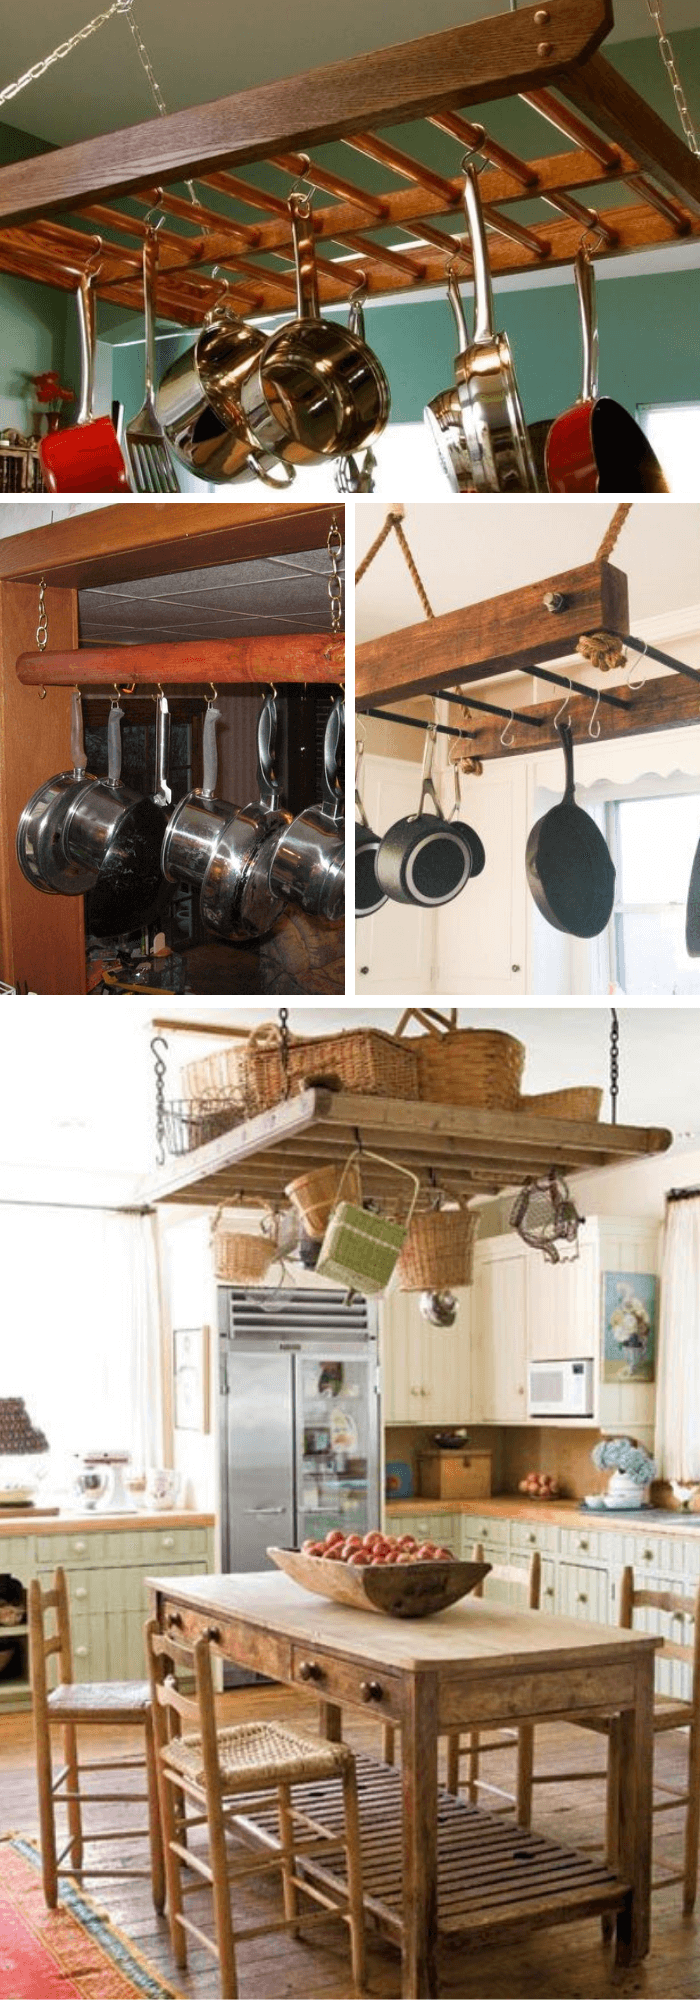 Kitchen Decor Projects With Reclaimed Wood Wooden Hanging Pot Rack